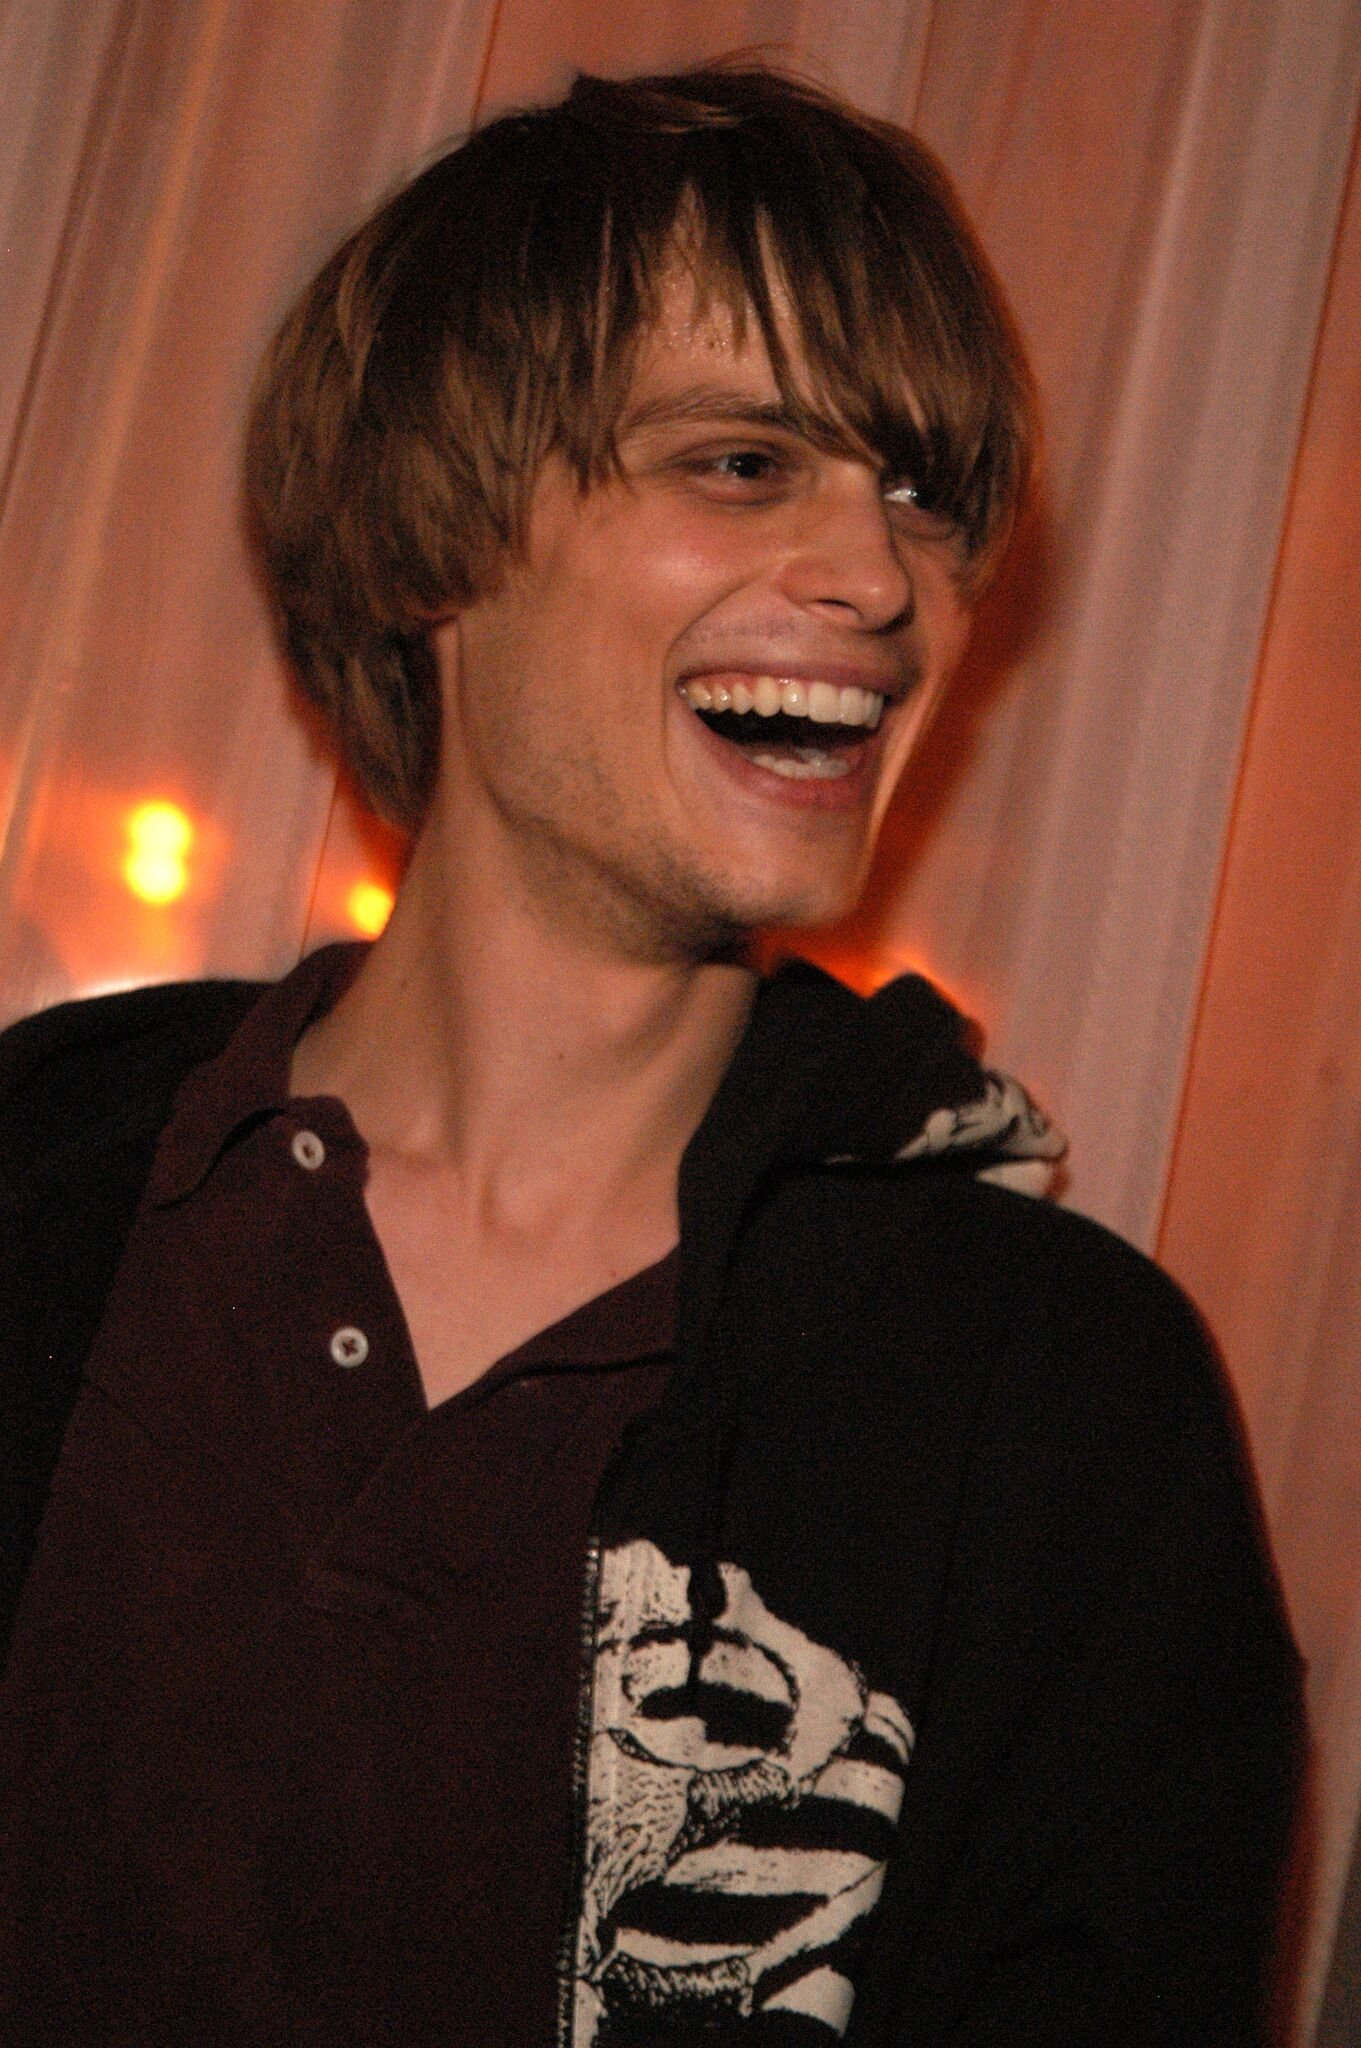 Model Mathew Gubler attends the Christopher Deane after party | Getty Images / Global Images Ukraine